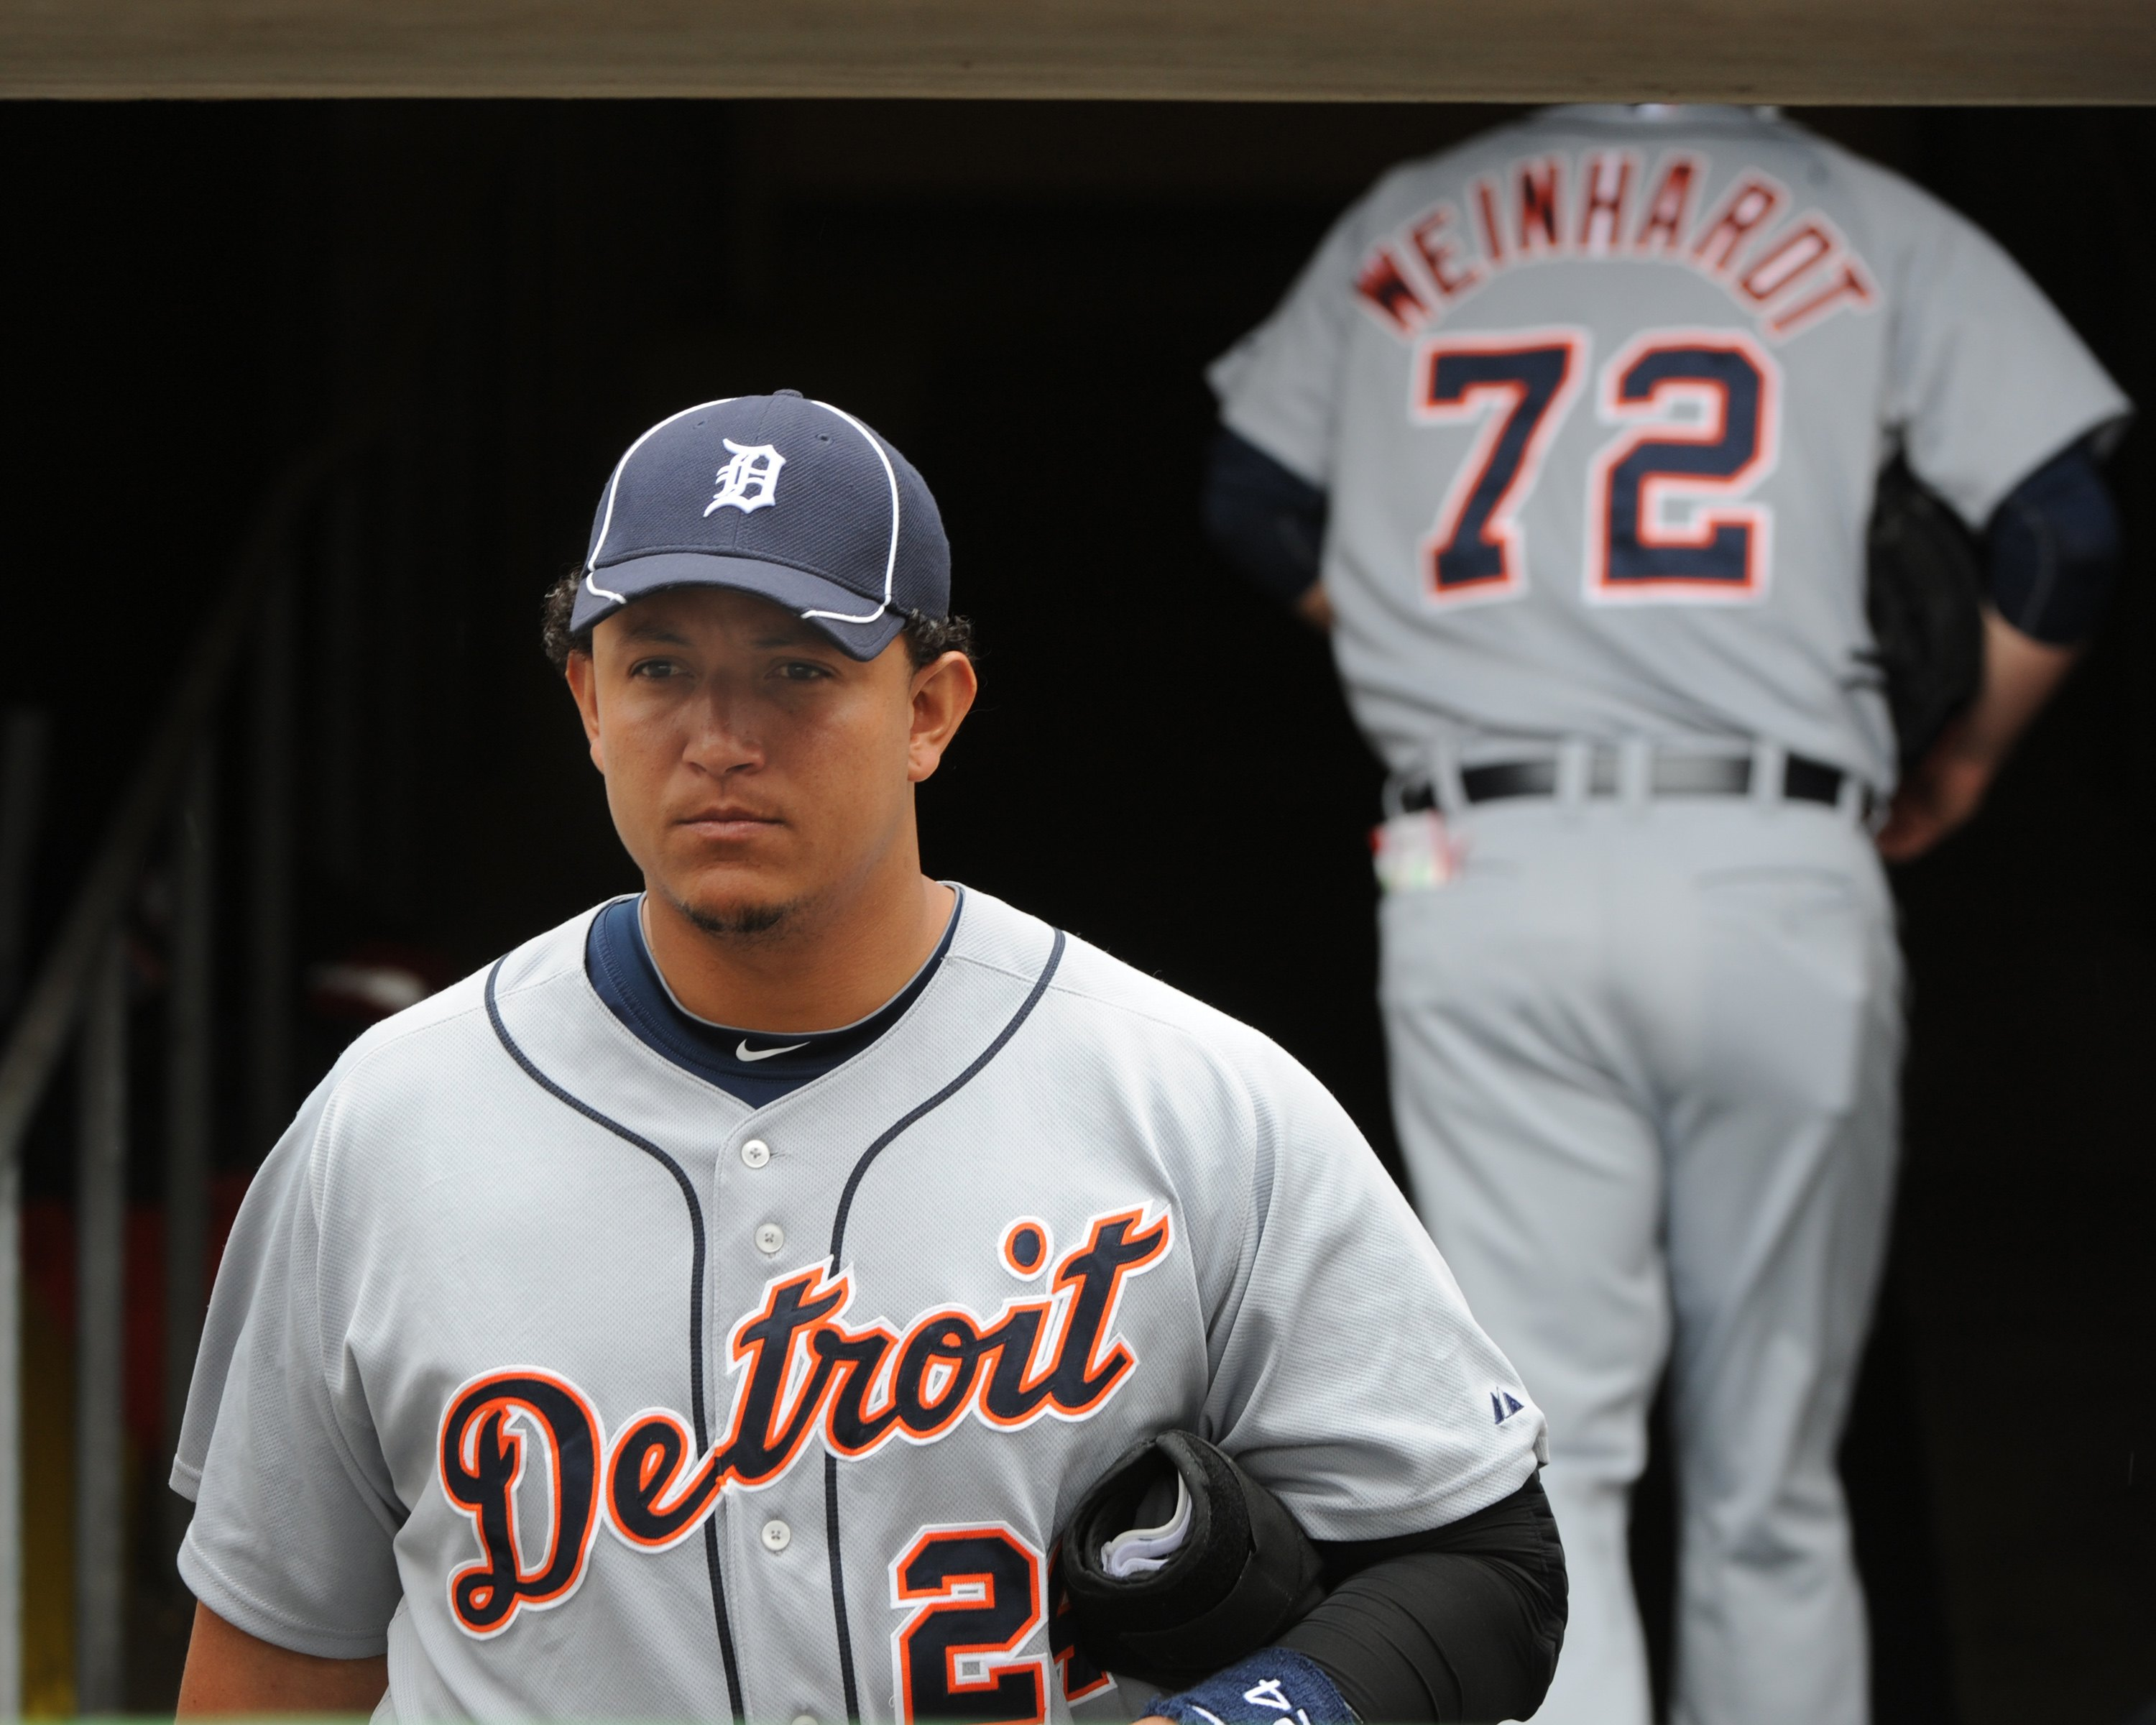 CLEARWATER, FL - MARCH 11: Infielder Miguel Cabrera #24 of the Detroit Tigers takes the field before play against the Philadelphia Phillies March 11, 2010 at the Bright House Field in Clearwater, Florida. (Photo by Al Messerschmidt/Getty Images)